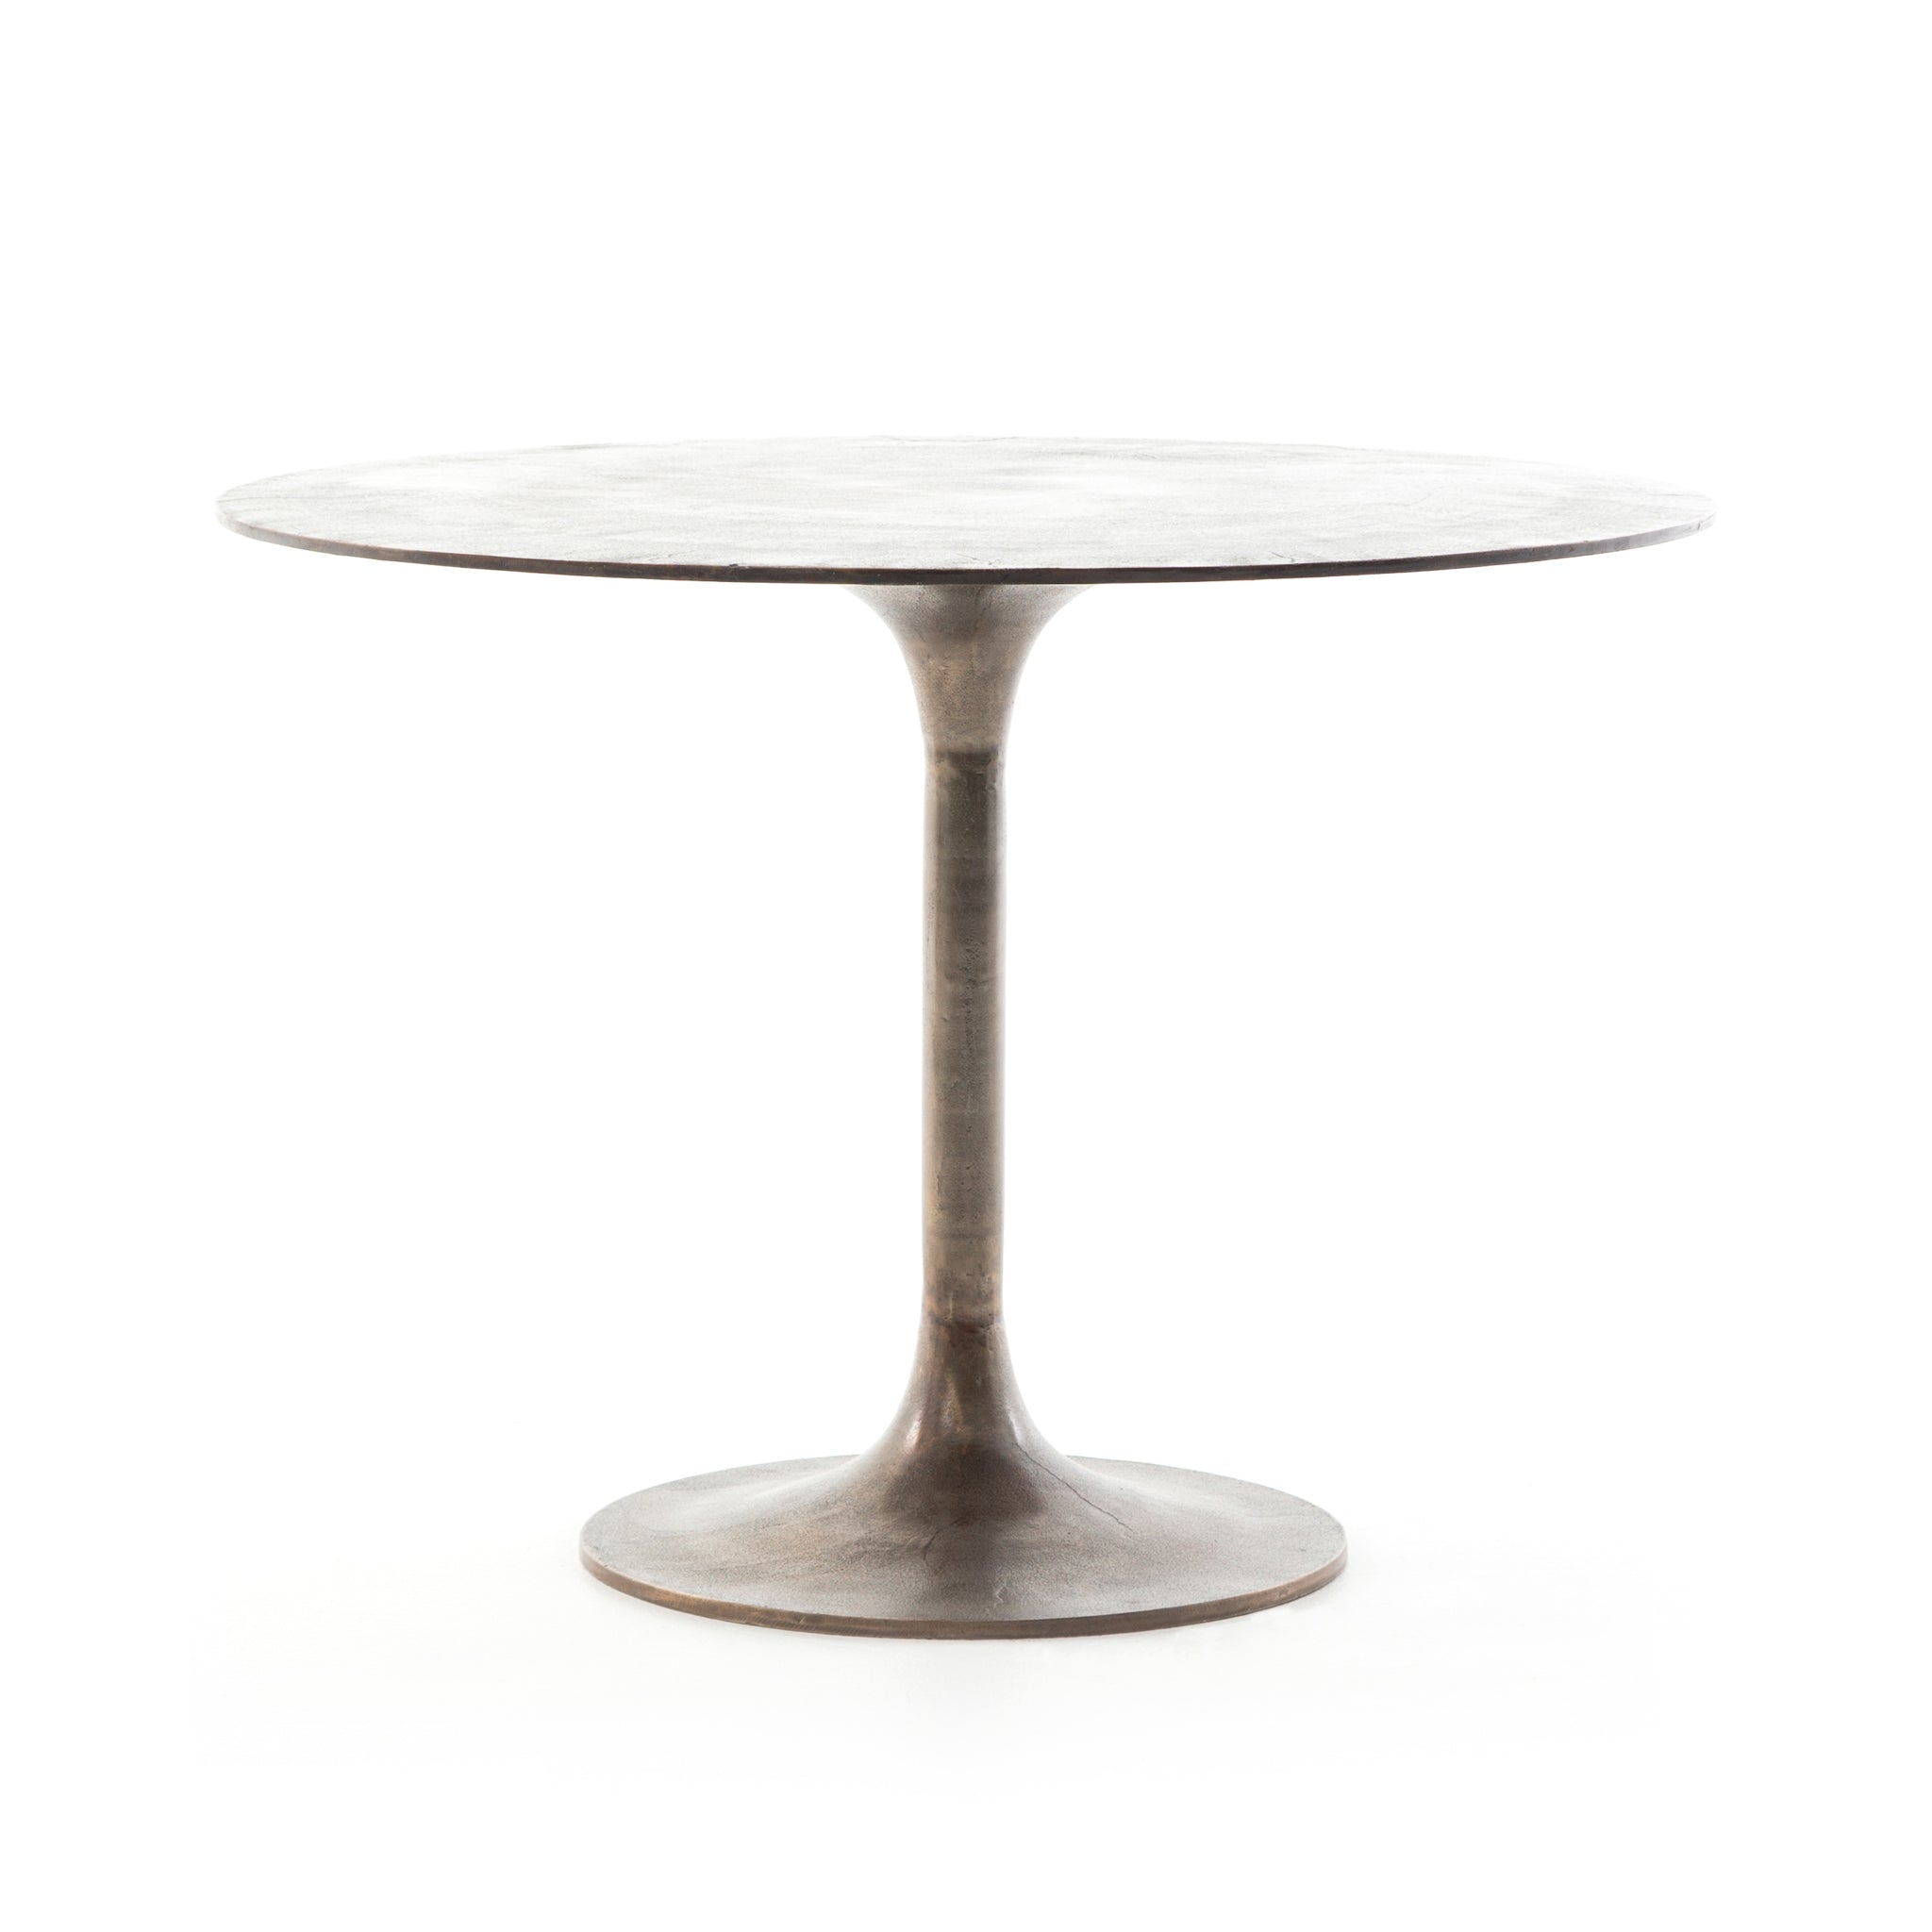 Simeno Cast Aluminum Bistro Table - Antique Rust